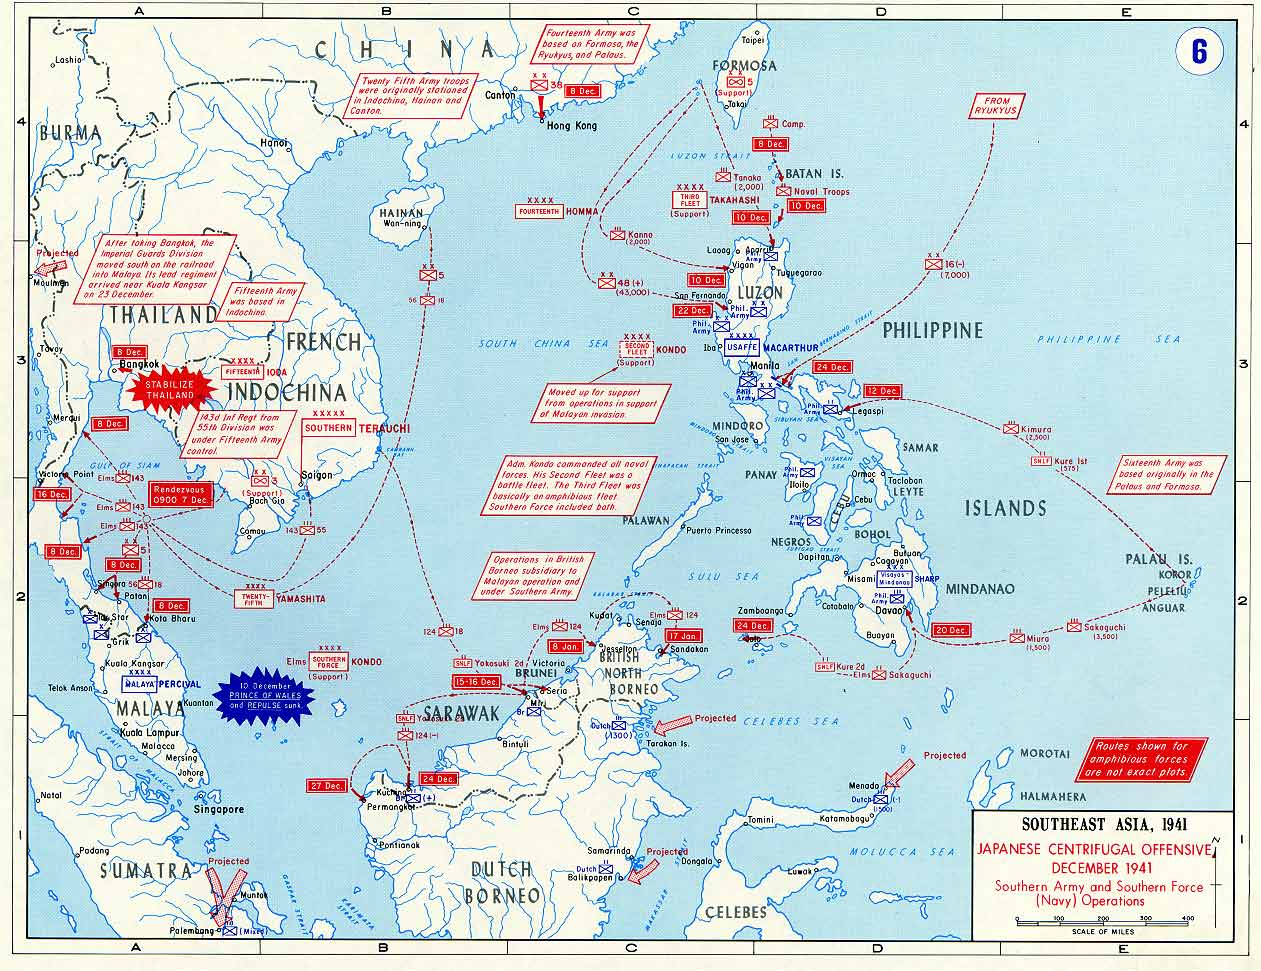 the war in southeast asia during world war ii The burma campaign in the south-east asian theatre of world war ii was fought primarily between the forces of the british empire and china, with support from the united states, against the forces of the empire of japan, thailand, and the indian national army.